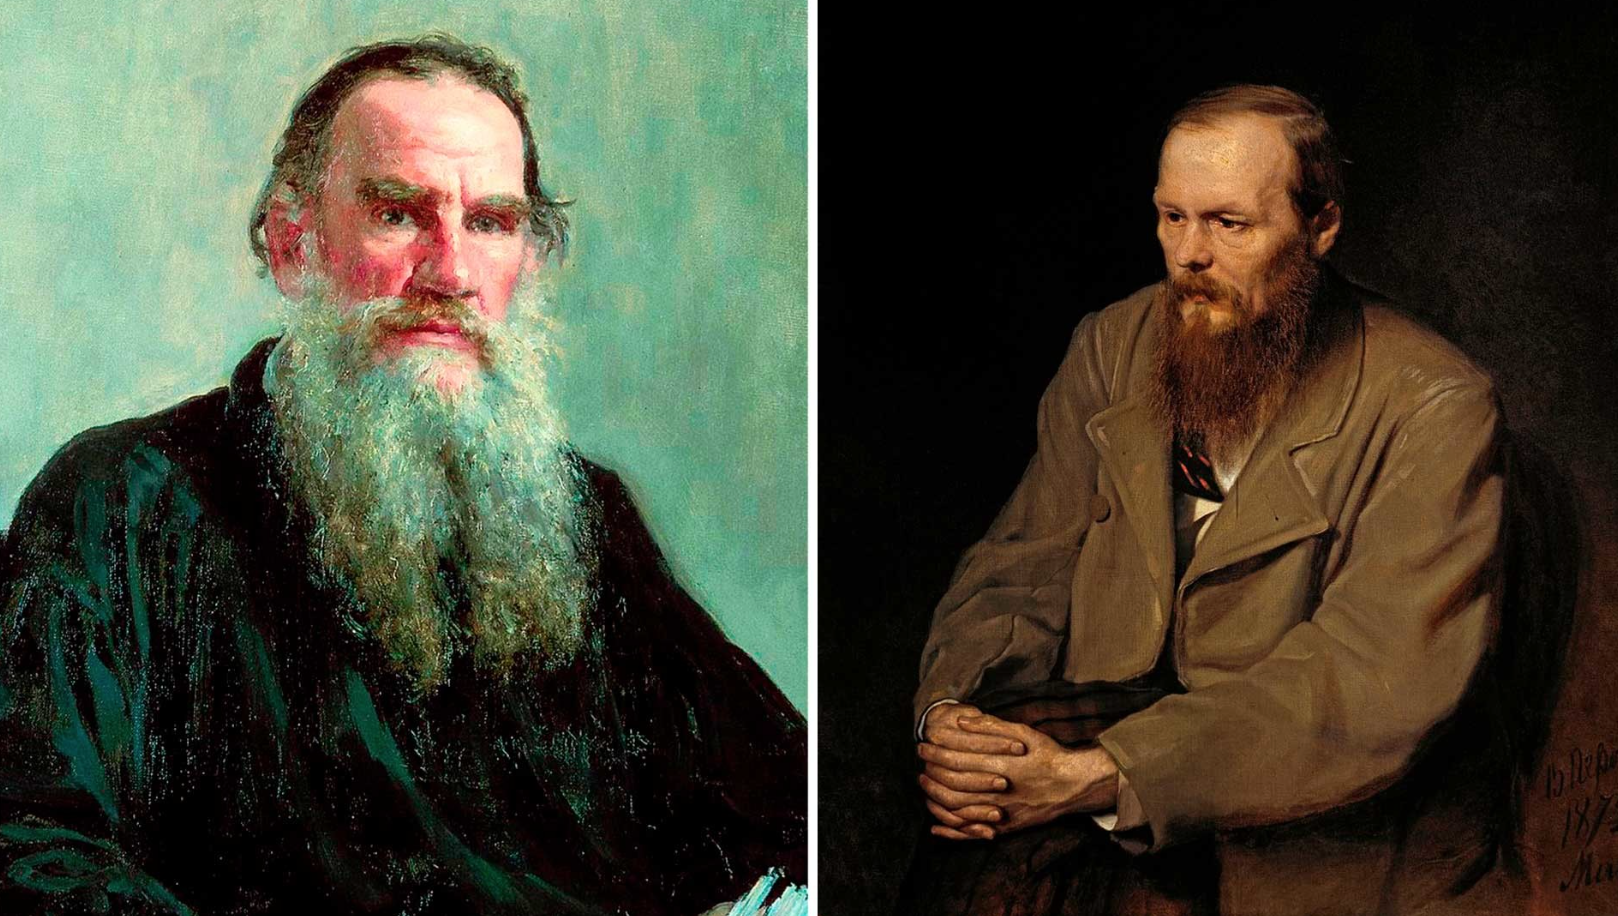 Tolstoy and Dost